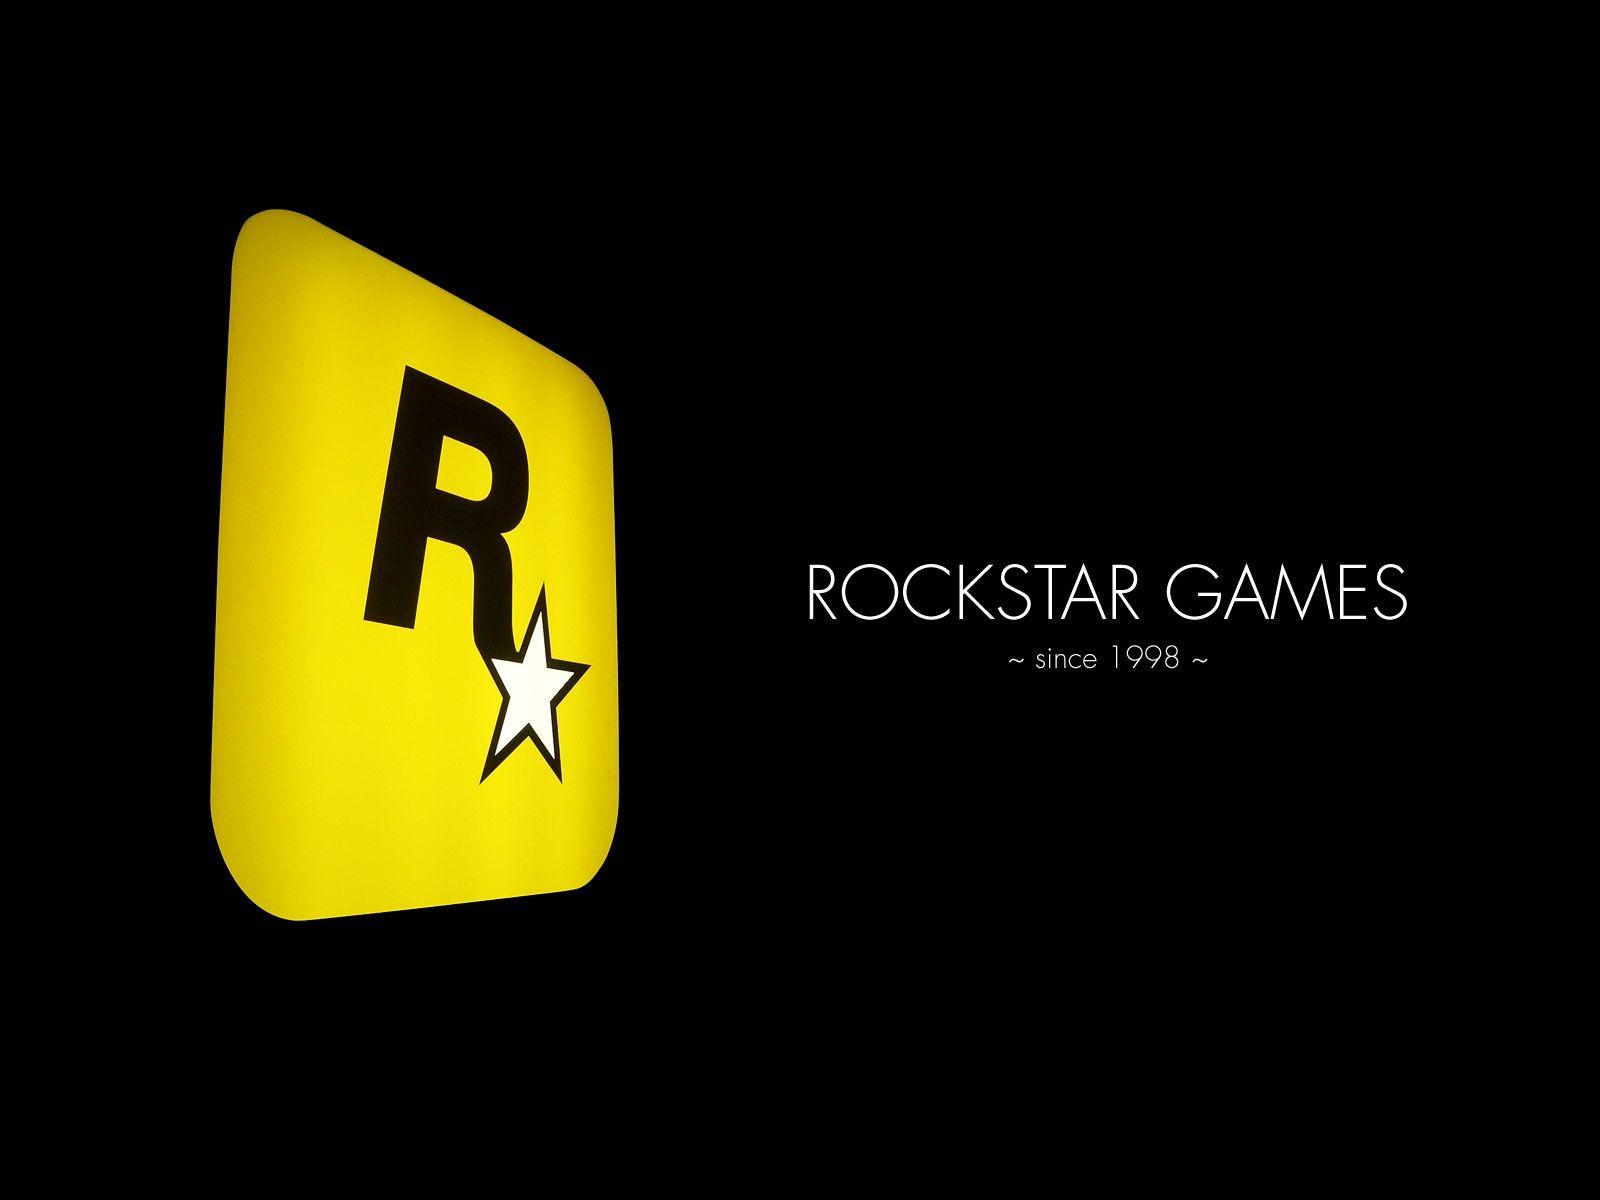 Sports Wallpapers Hd Rockstar Games Wallpapers Wallpaper Cave